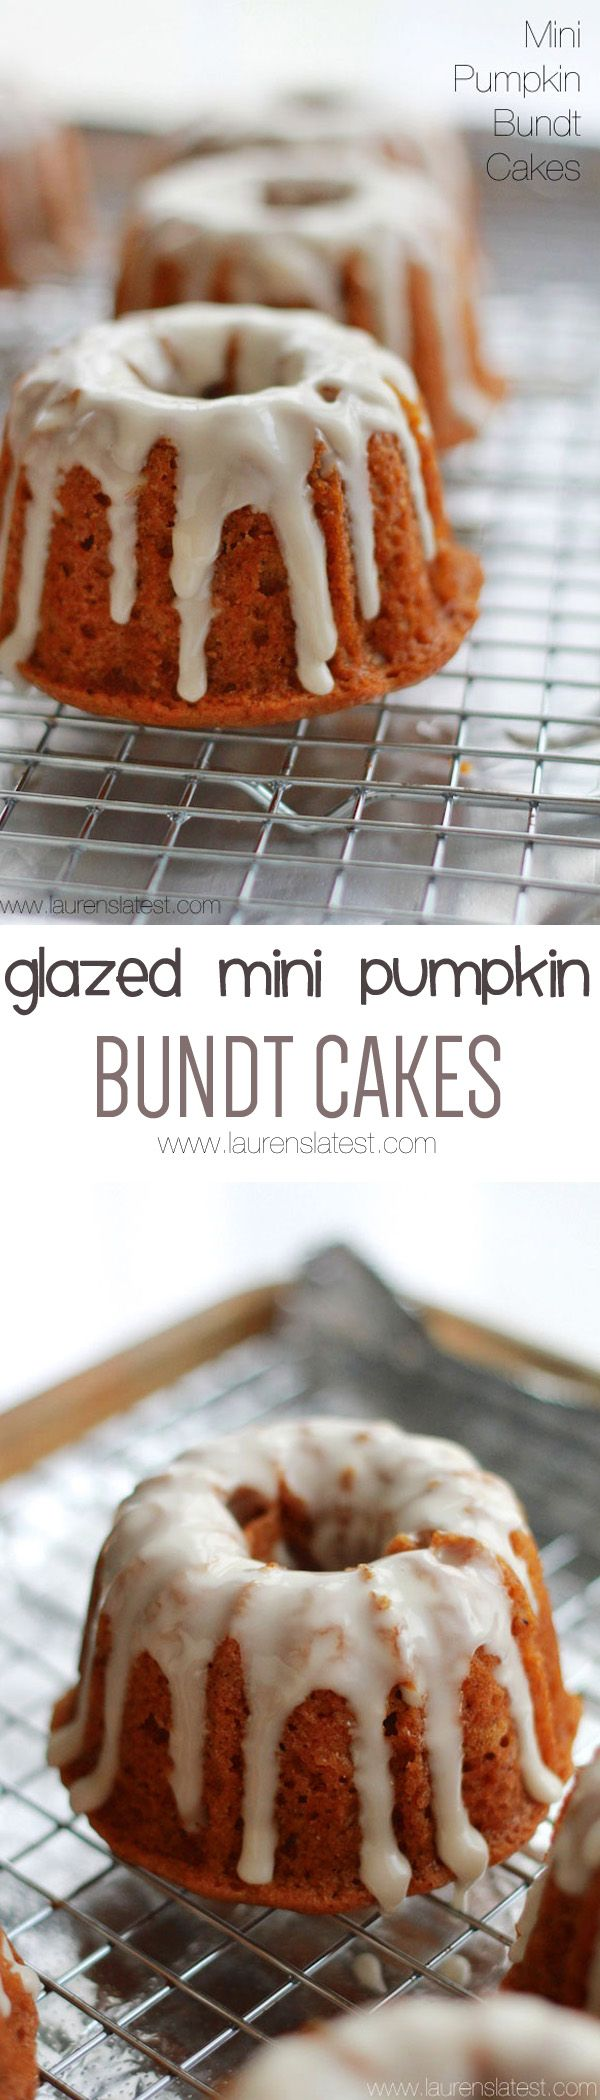 Glazed Mini Pumpkin Bundt Cakes - The cutest and tastiest things ever!